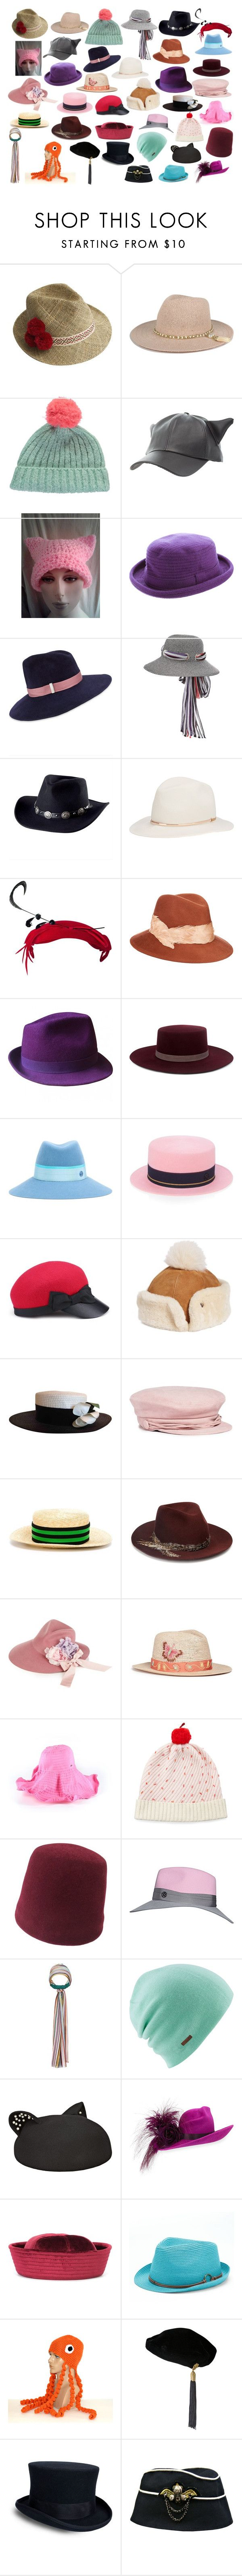 """Cute hats 2"" by asherthecrimsonfox ❤ liked on Polyvore featuring Justine Hats, Miss Pom Pom, Charlotte Russe, Pussycat, Chapeaux Motsch, Gigi Burris Millinery, Missoni Mare, San Diego Hat Co., Janessa Leone and Eugenia Kim"